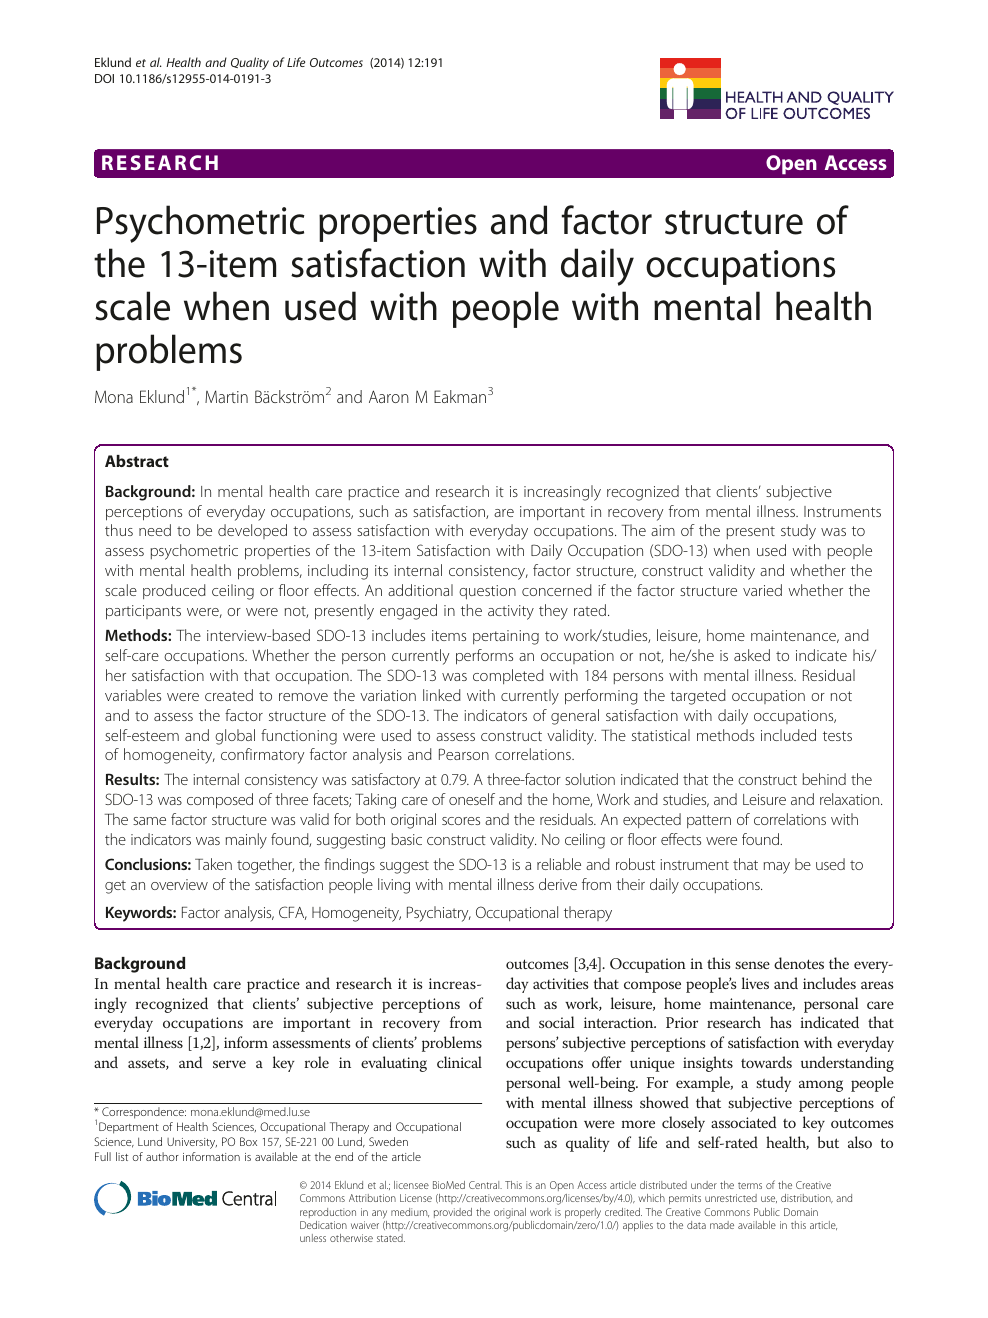 Psychometric Properties And Factor Structure Of The 13 Item Satisfaction With Daily Occupations Scale When Used With People With Mental Health Problems Topic Of Research Paper In Psychology Download Scholarly Article Pdf